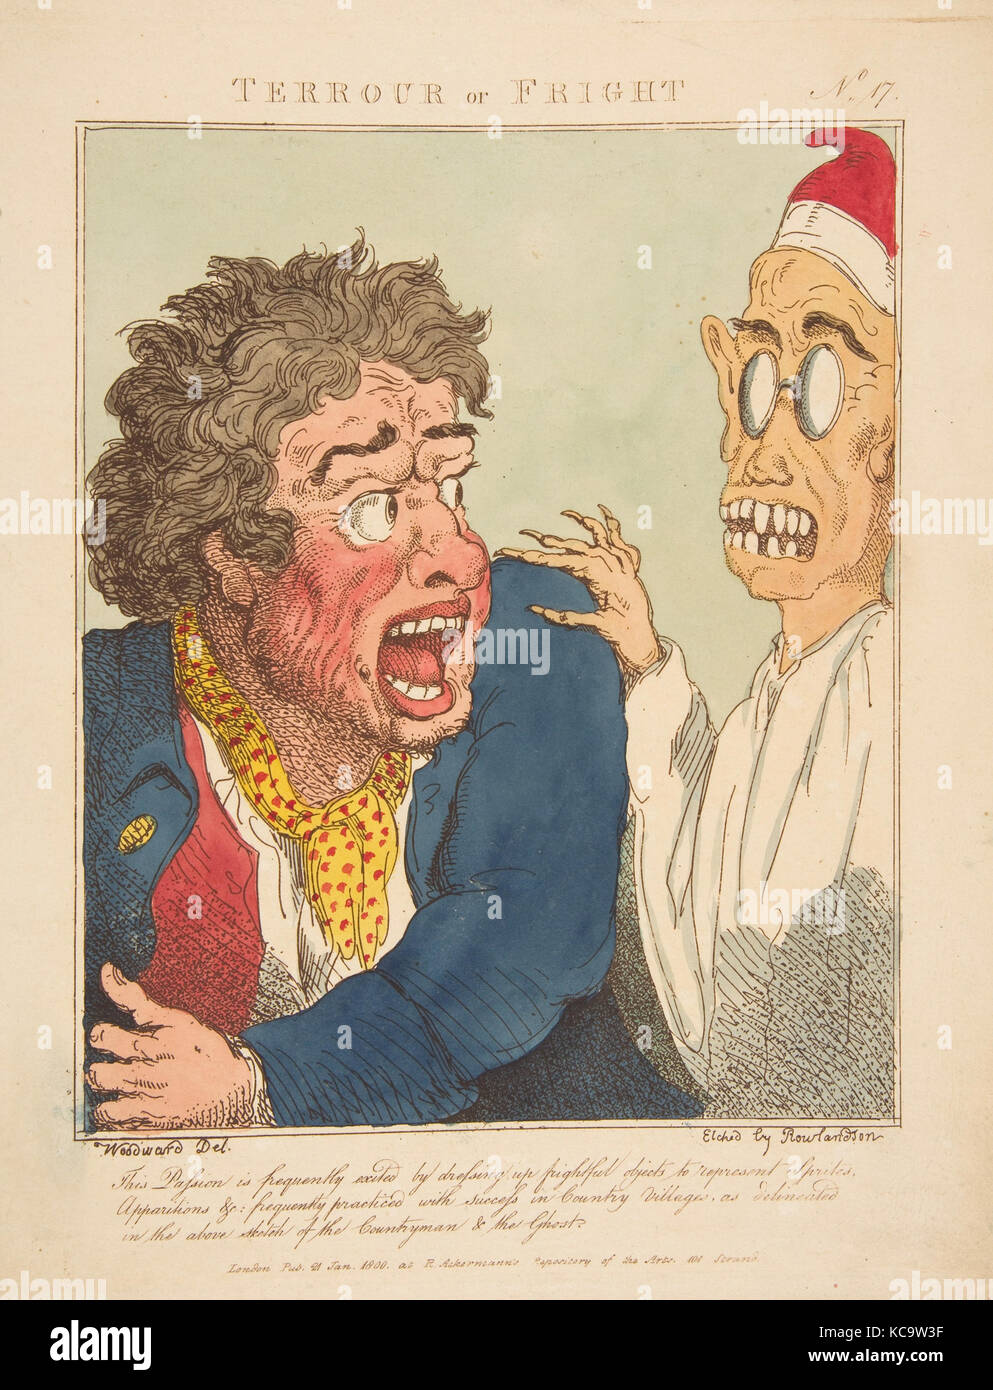 Terrour or Fright, After George Moutard Woodward, January 21, 1800 - Stock Image